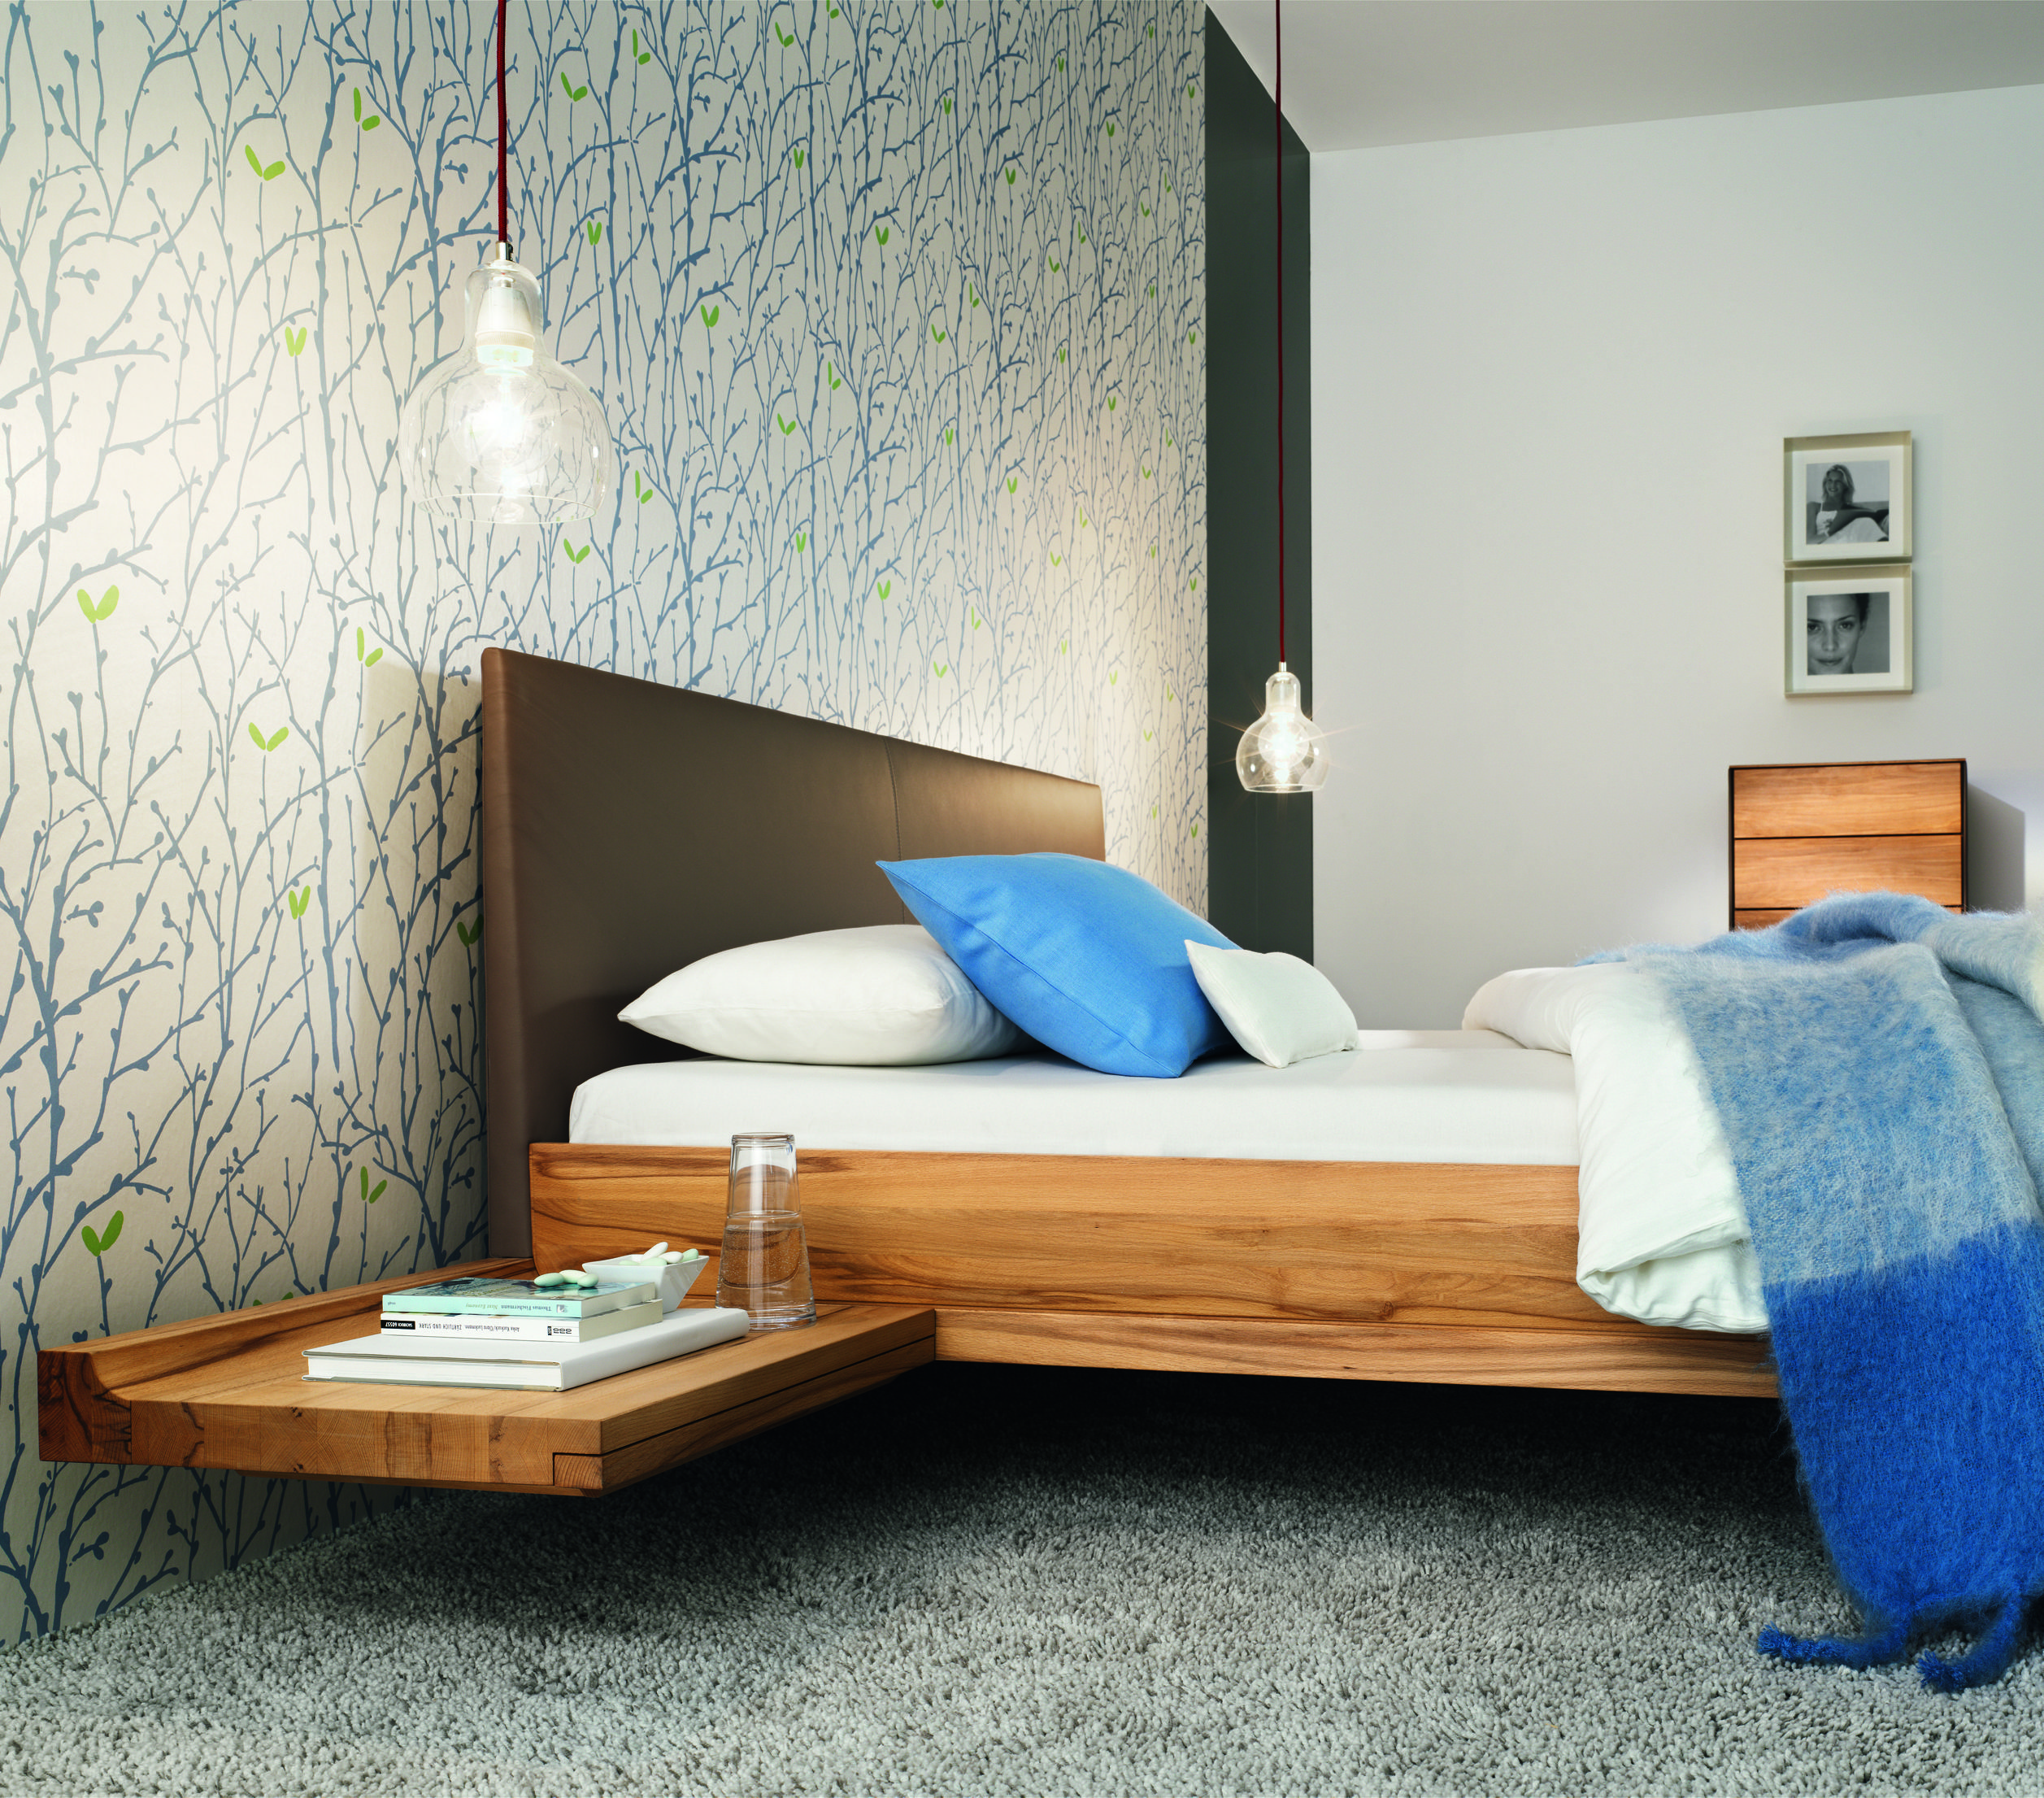 The Riletto platform bed by TEAM7 is